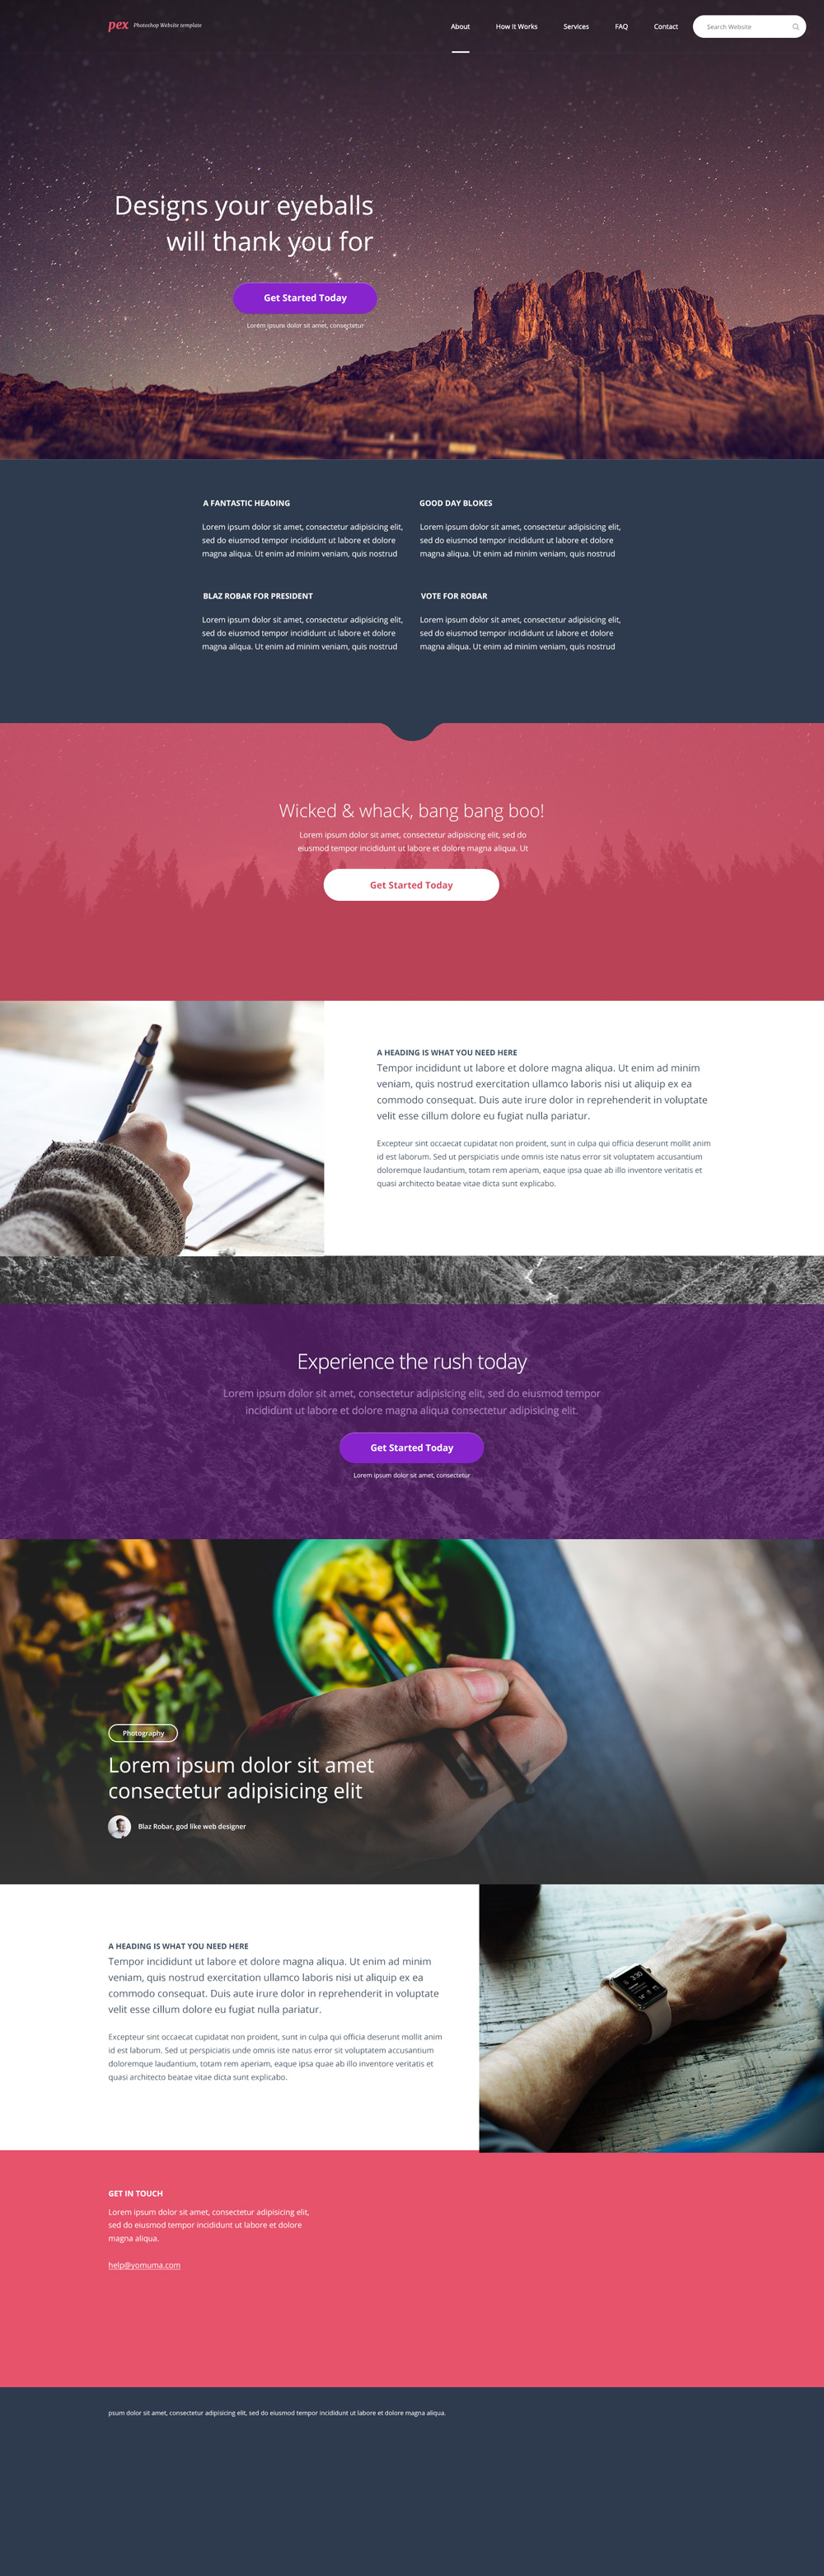 Pex - A free website home page Photoshop PSD